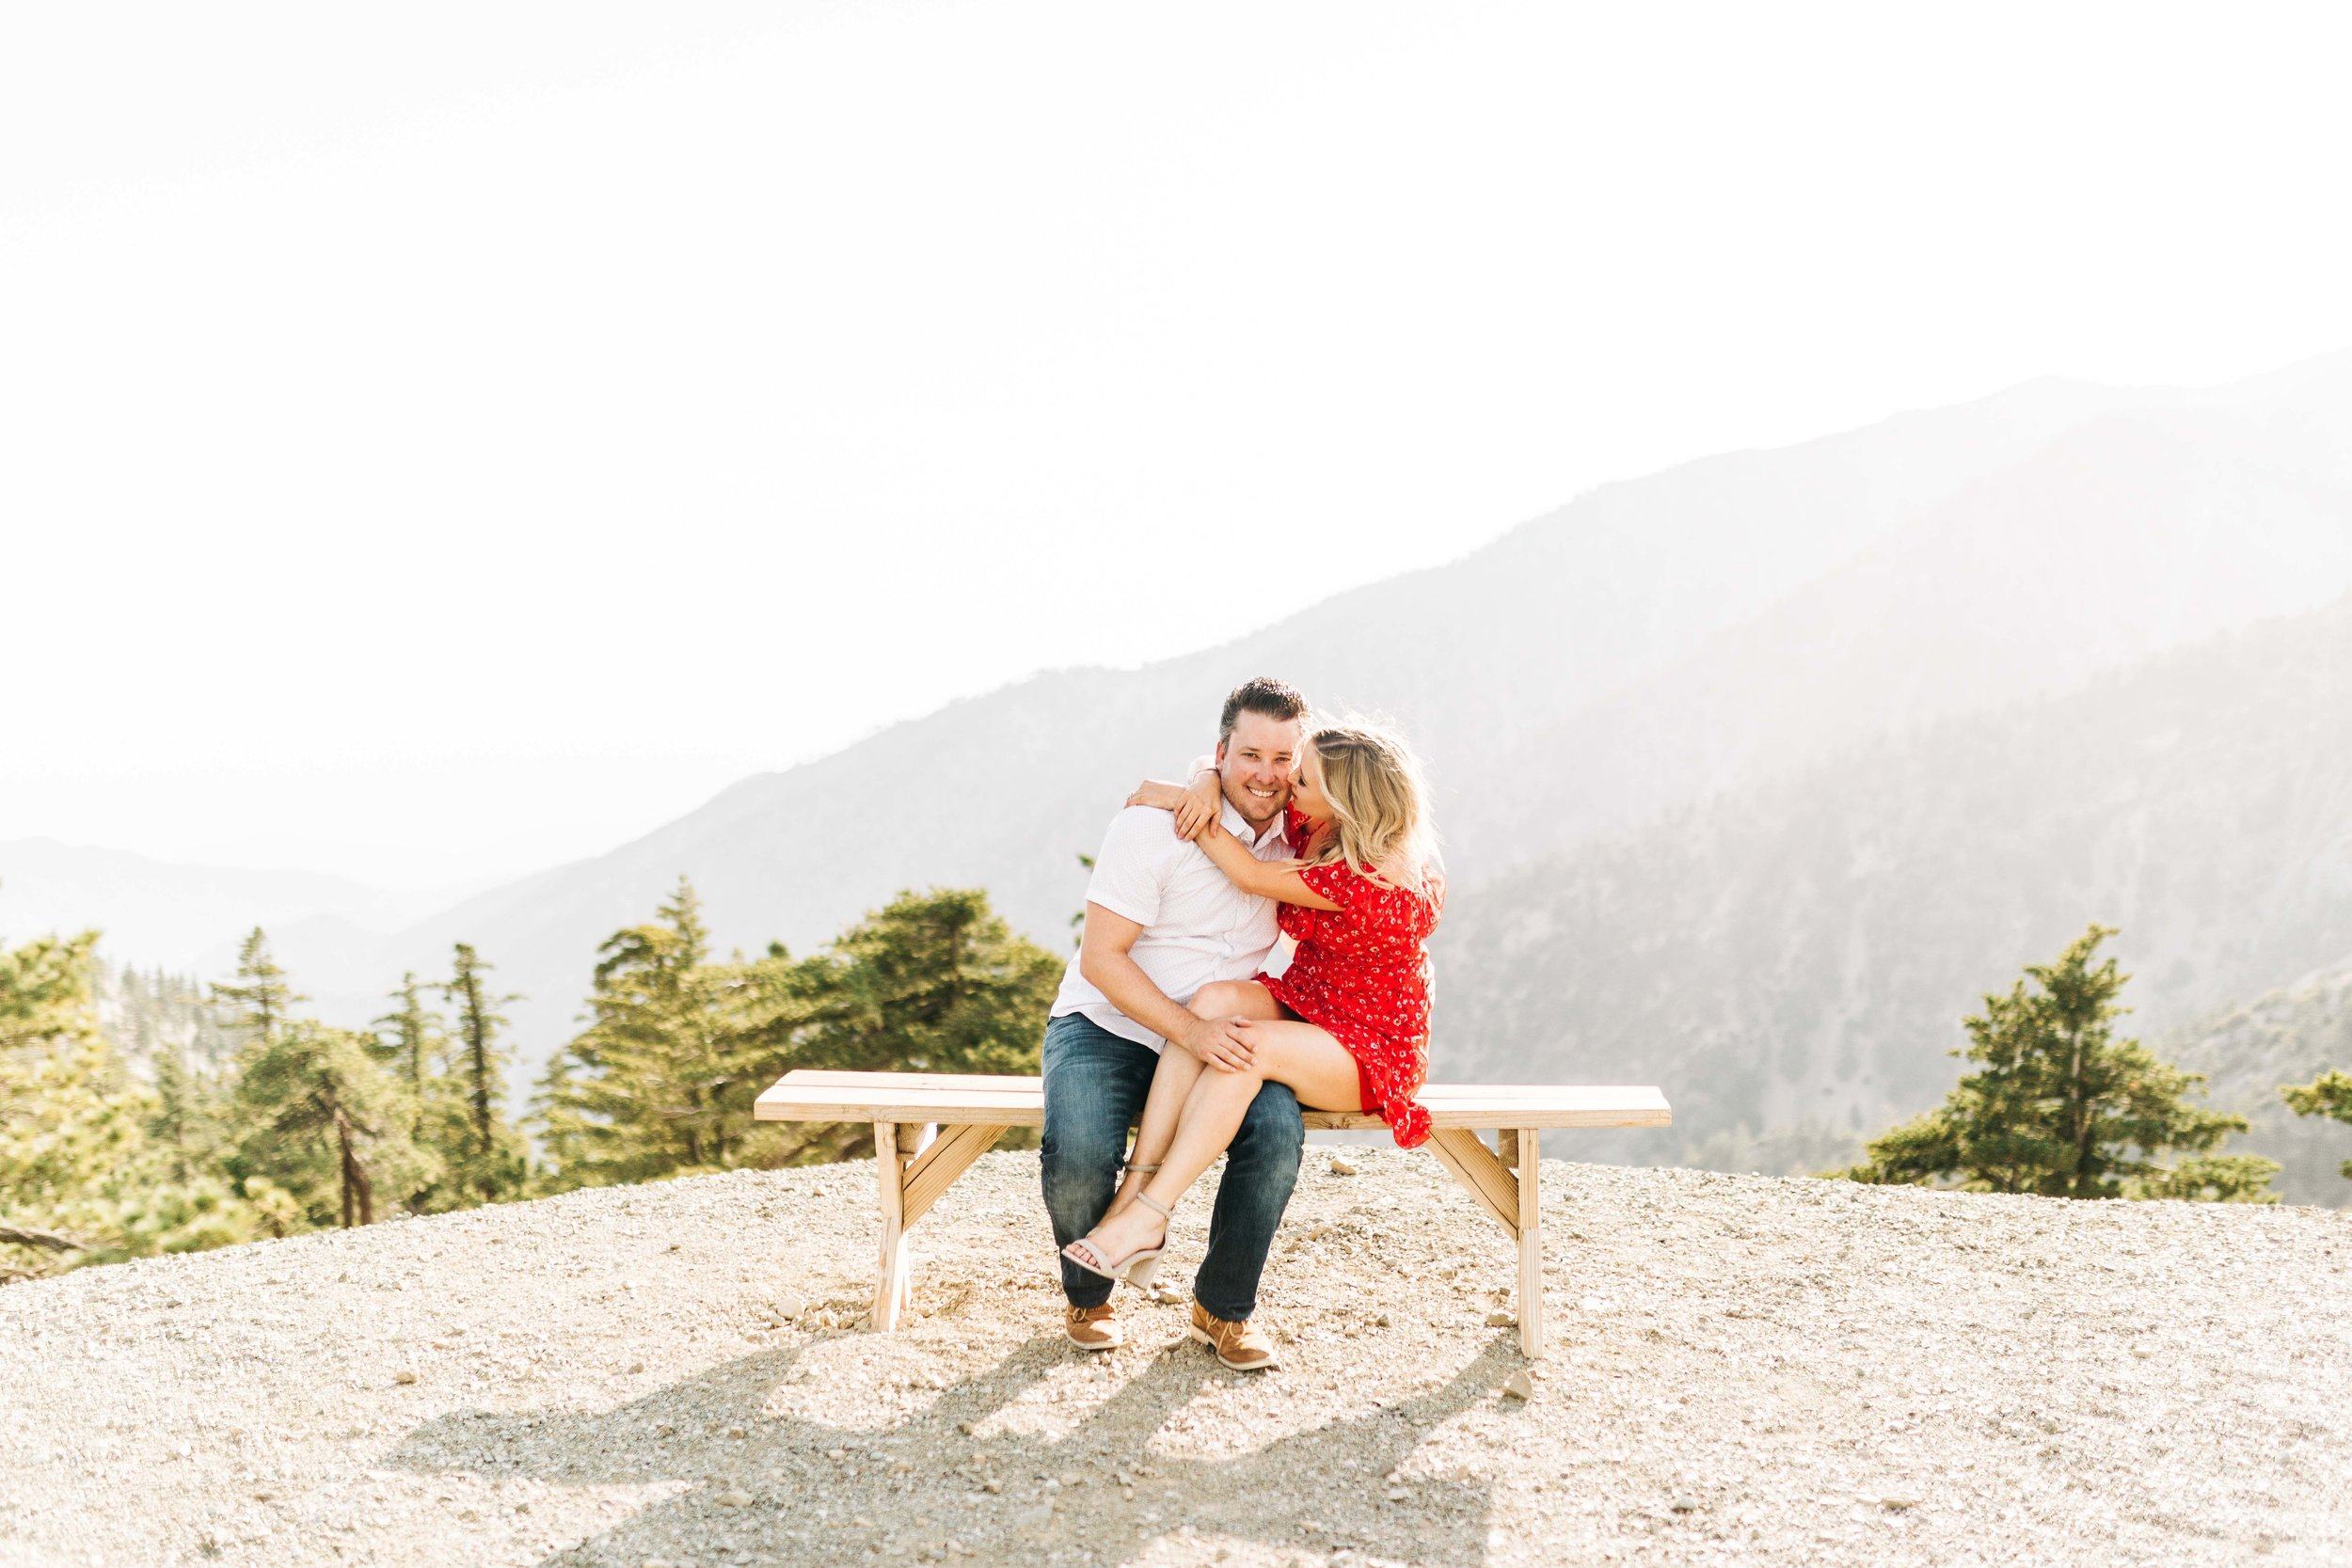 Rachael&Keith-Mt-Mount-Baldy-Engagement-Photos-Clarisse-Rae-Southern-California-Wedding-Photographer_13